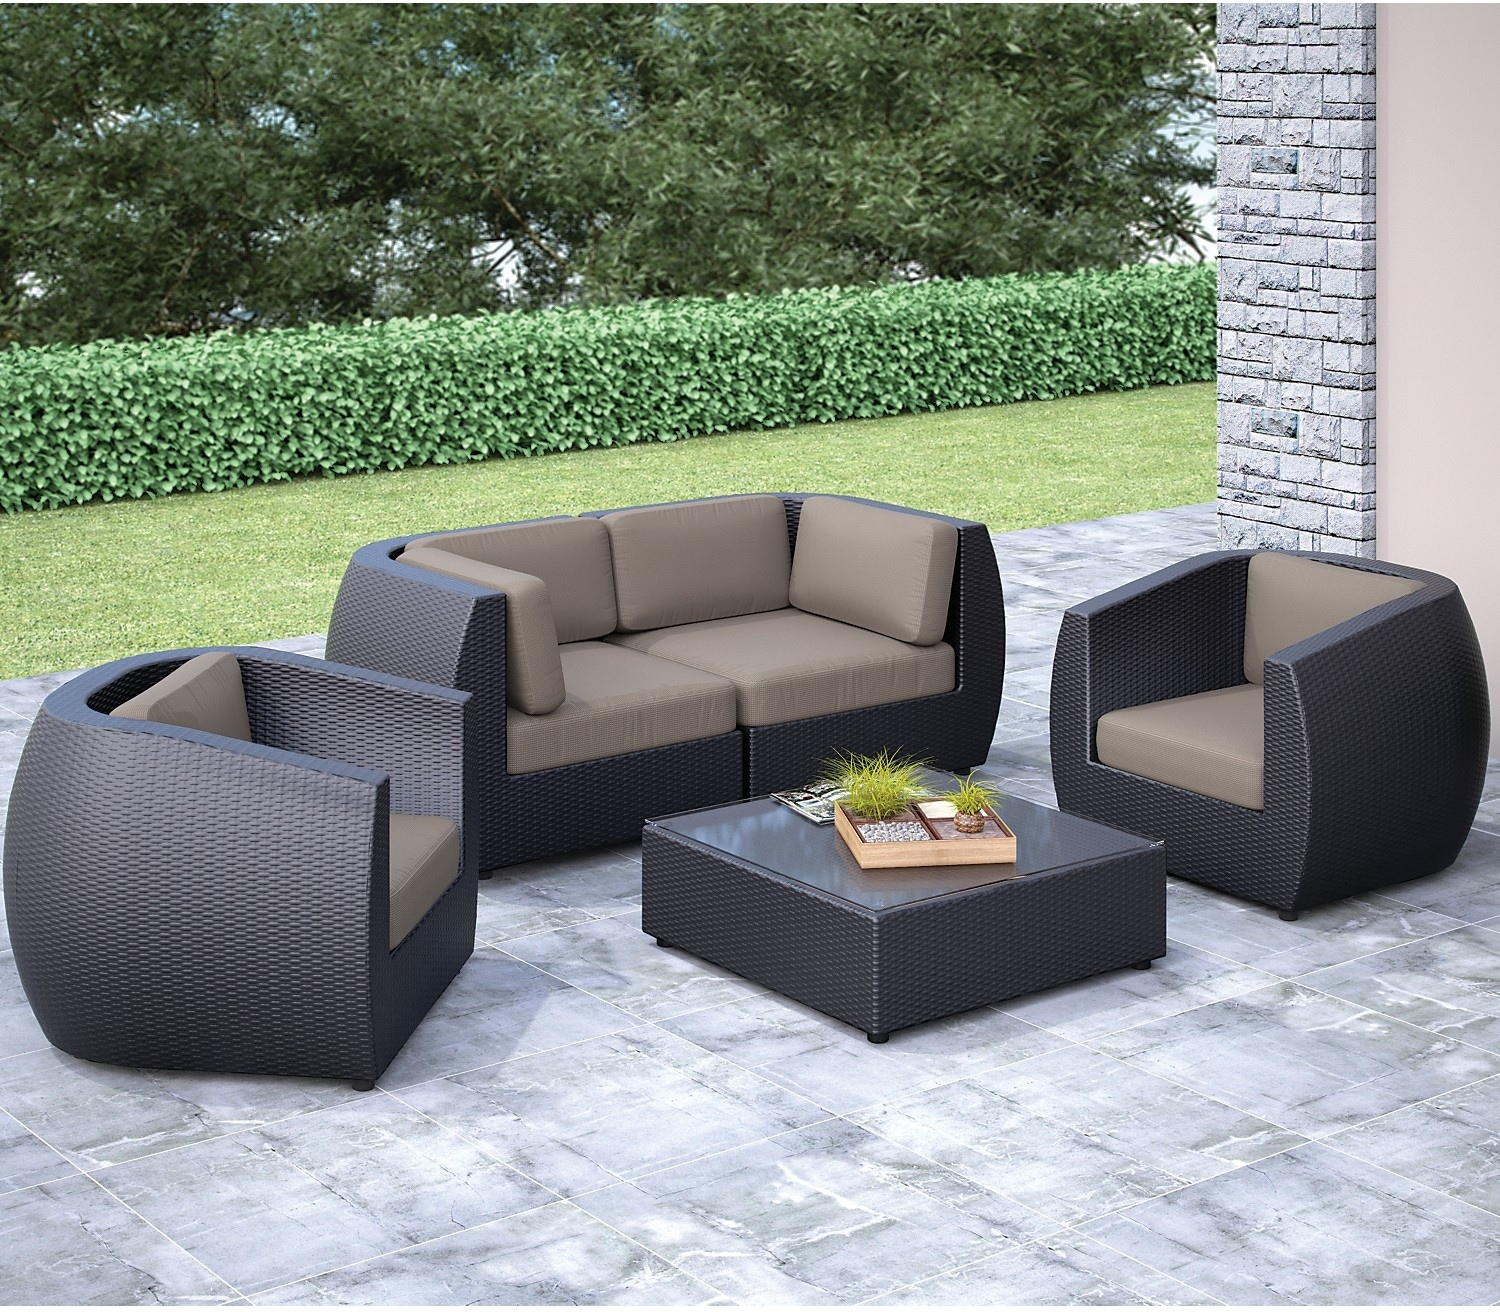 Seattle Conversation Patio Set - Loveseat